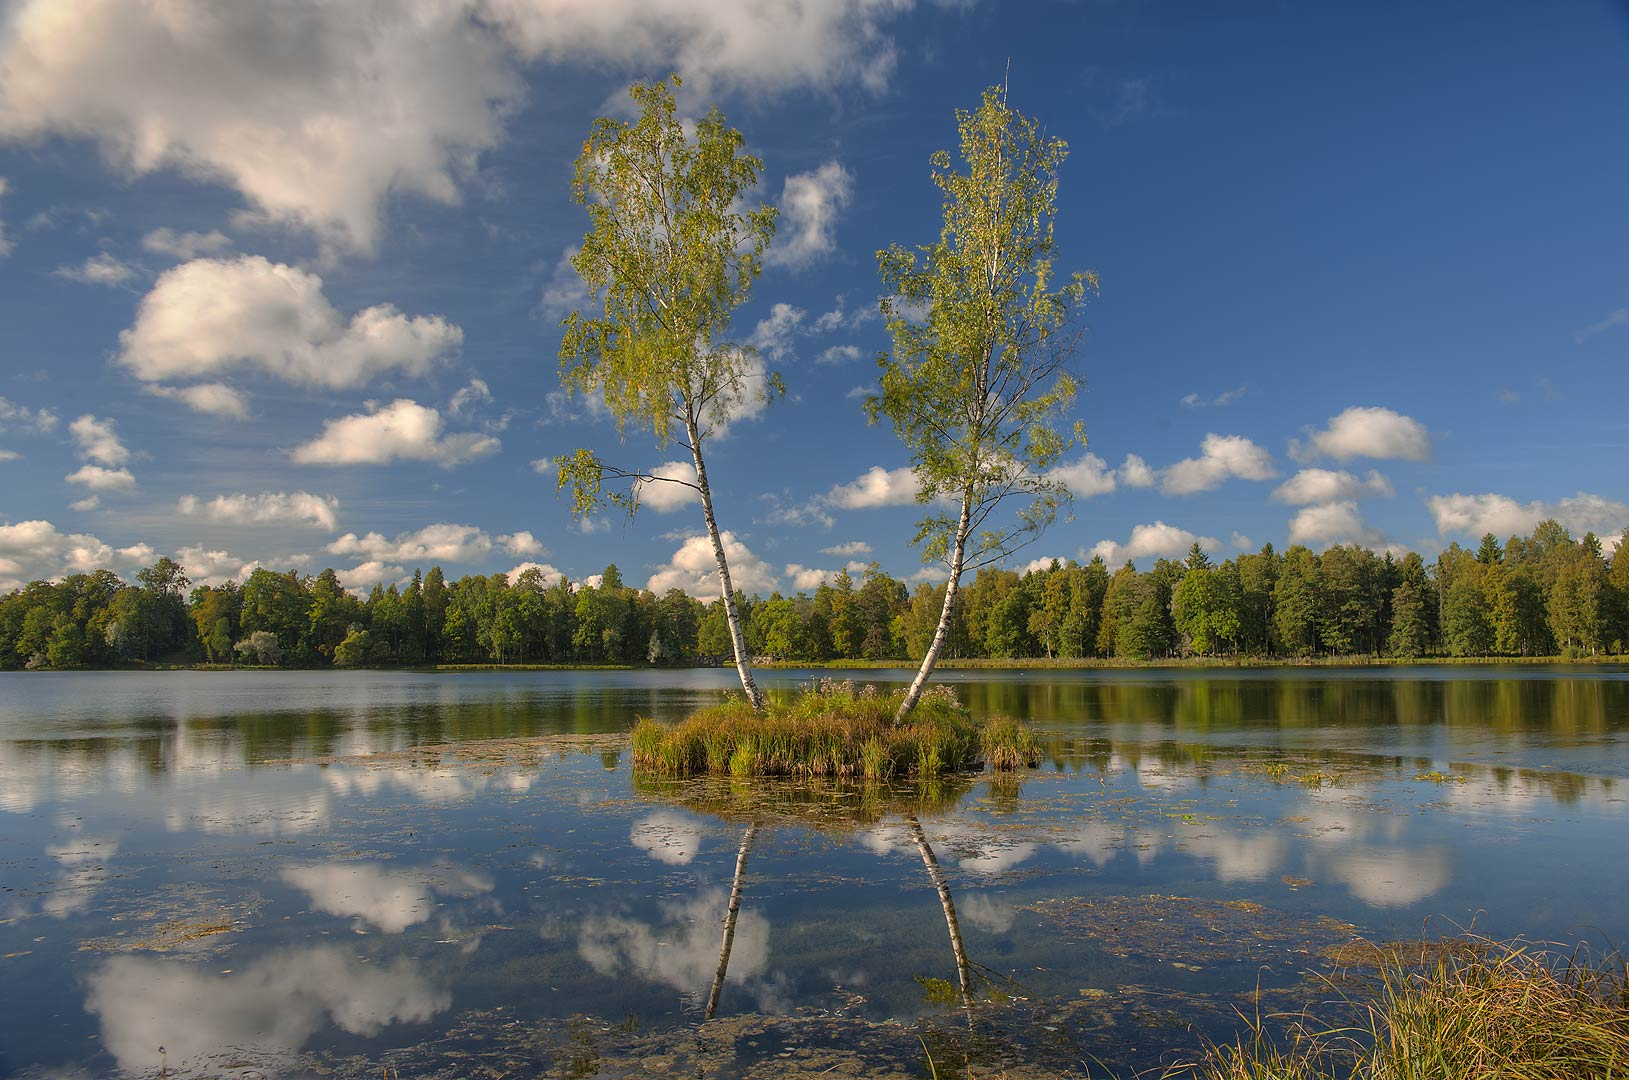 Two birches on a small island in Beloe Lake in...a suburb of St.Petersburg, Russia